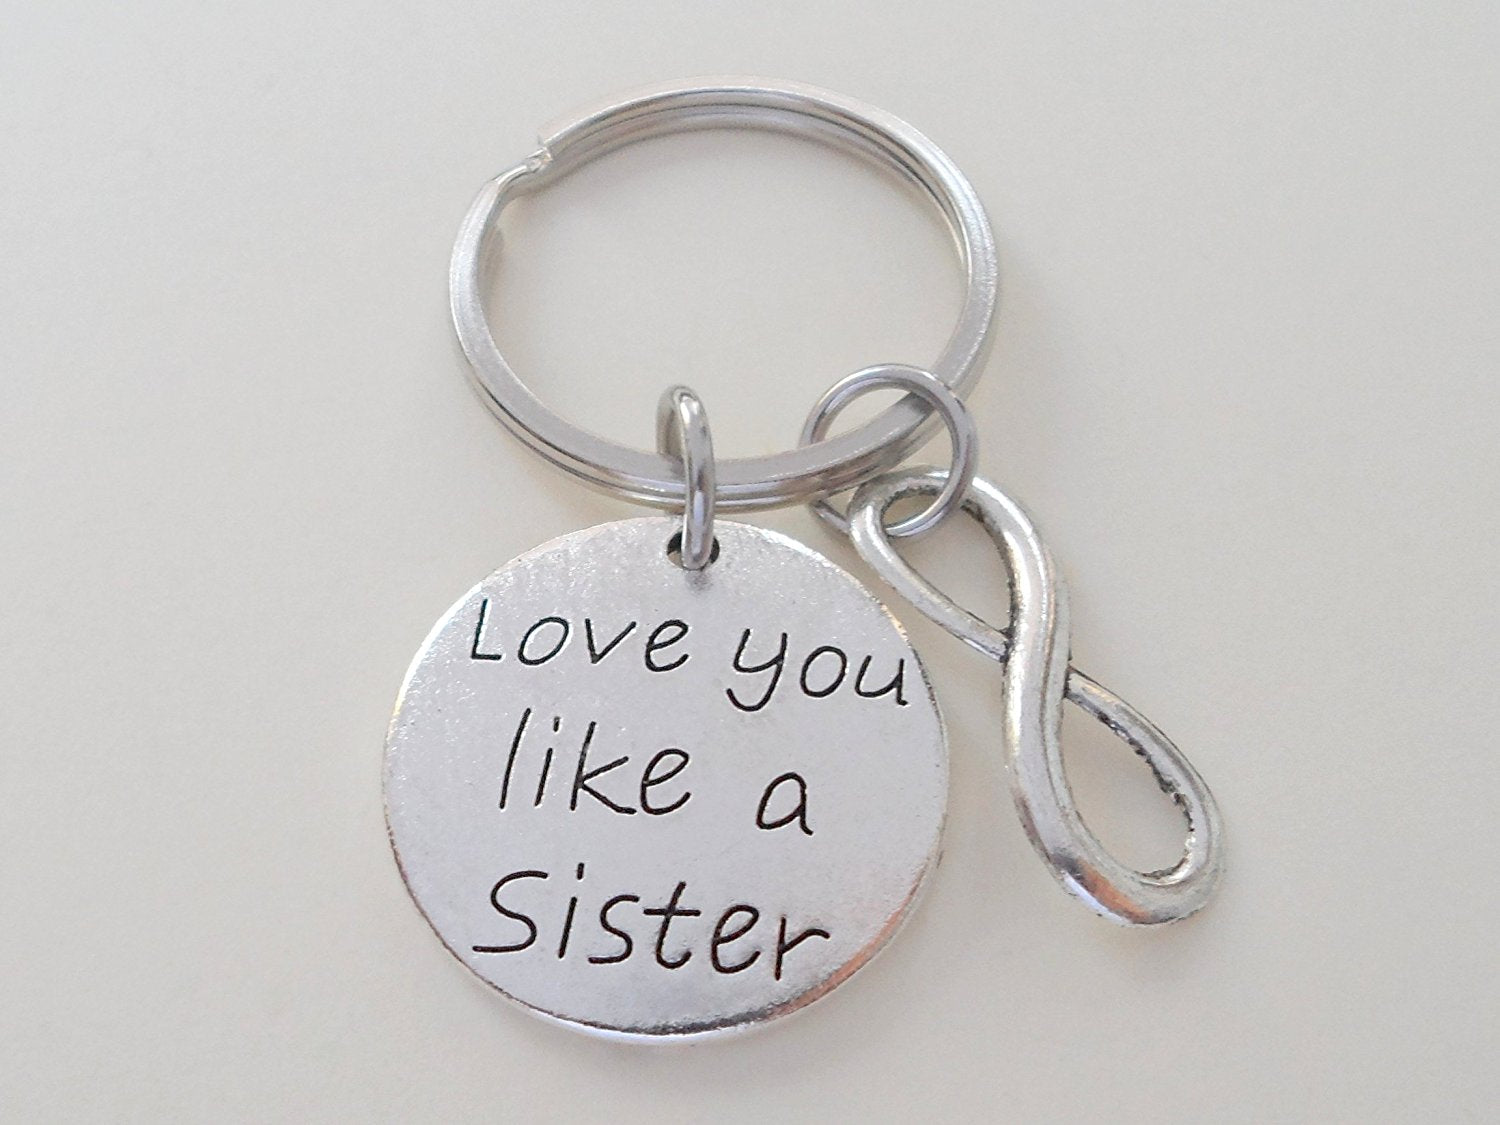 Love you like a sister keychain with infinity symbol charm love you like a sister keychain with infinity symbol charm buycottarizona